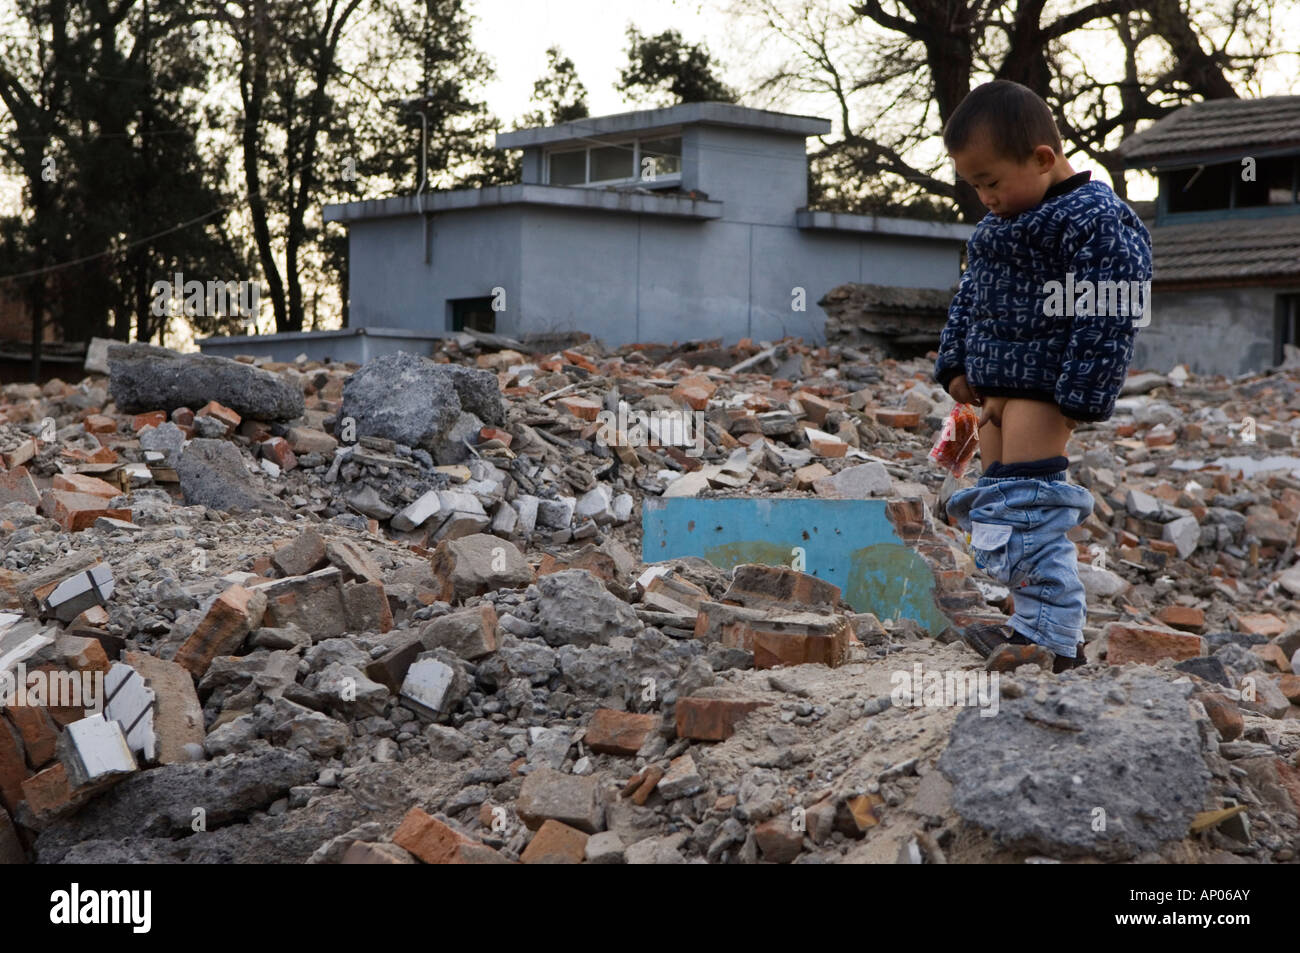 PEE ON ALLSITUATION IN CHINA Stock Photo - a boy peeing in a neighbourhood Hutong partially destroyed  and marked for demolition Beijing China